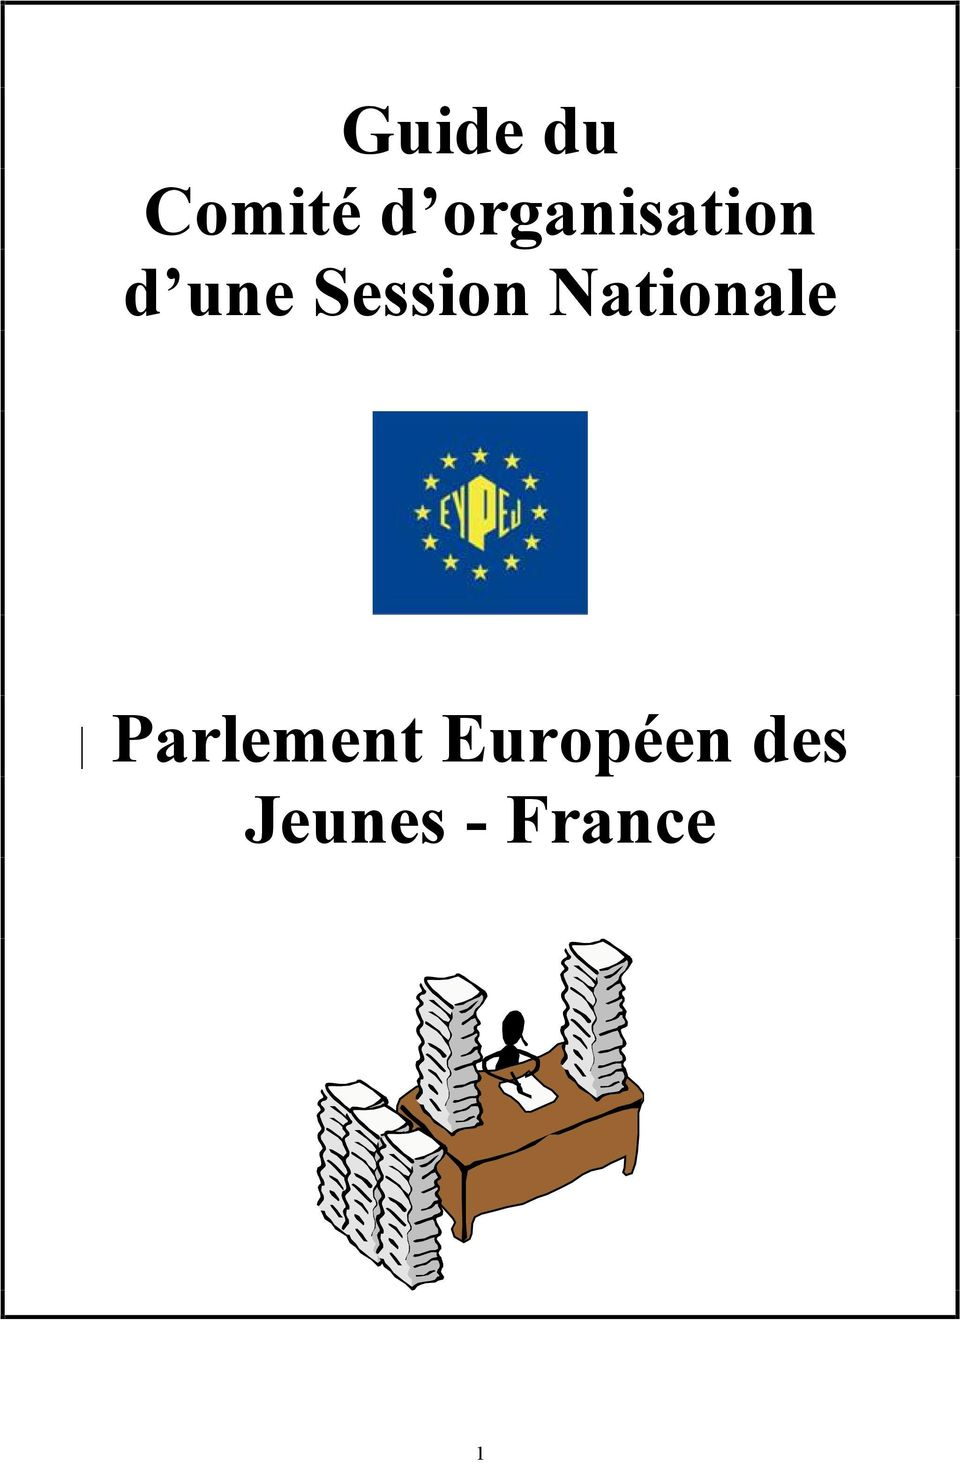 Session Nationale